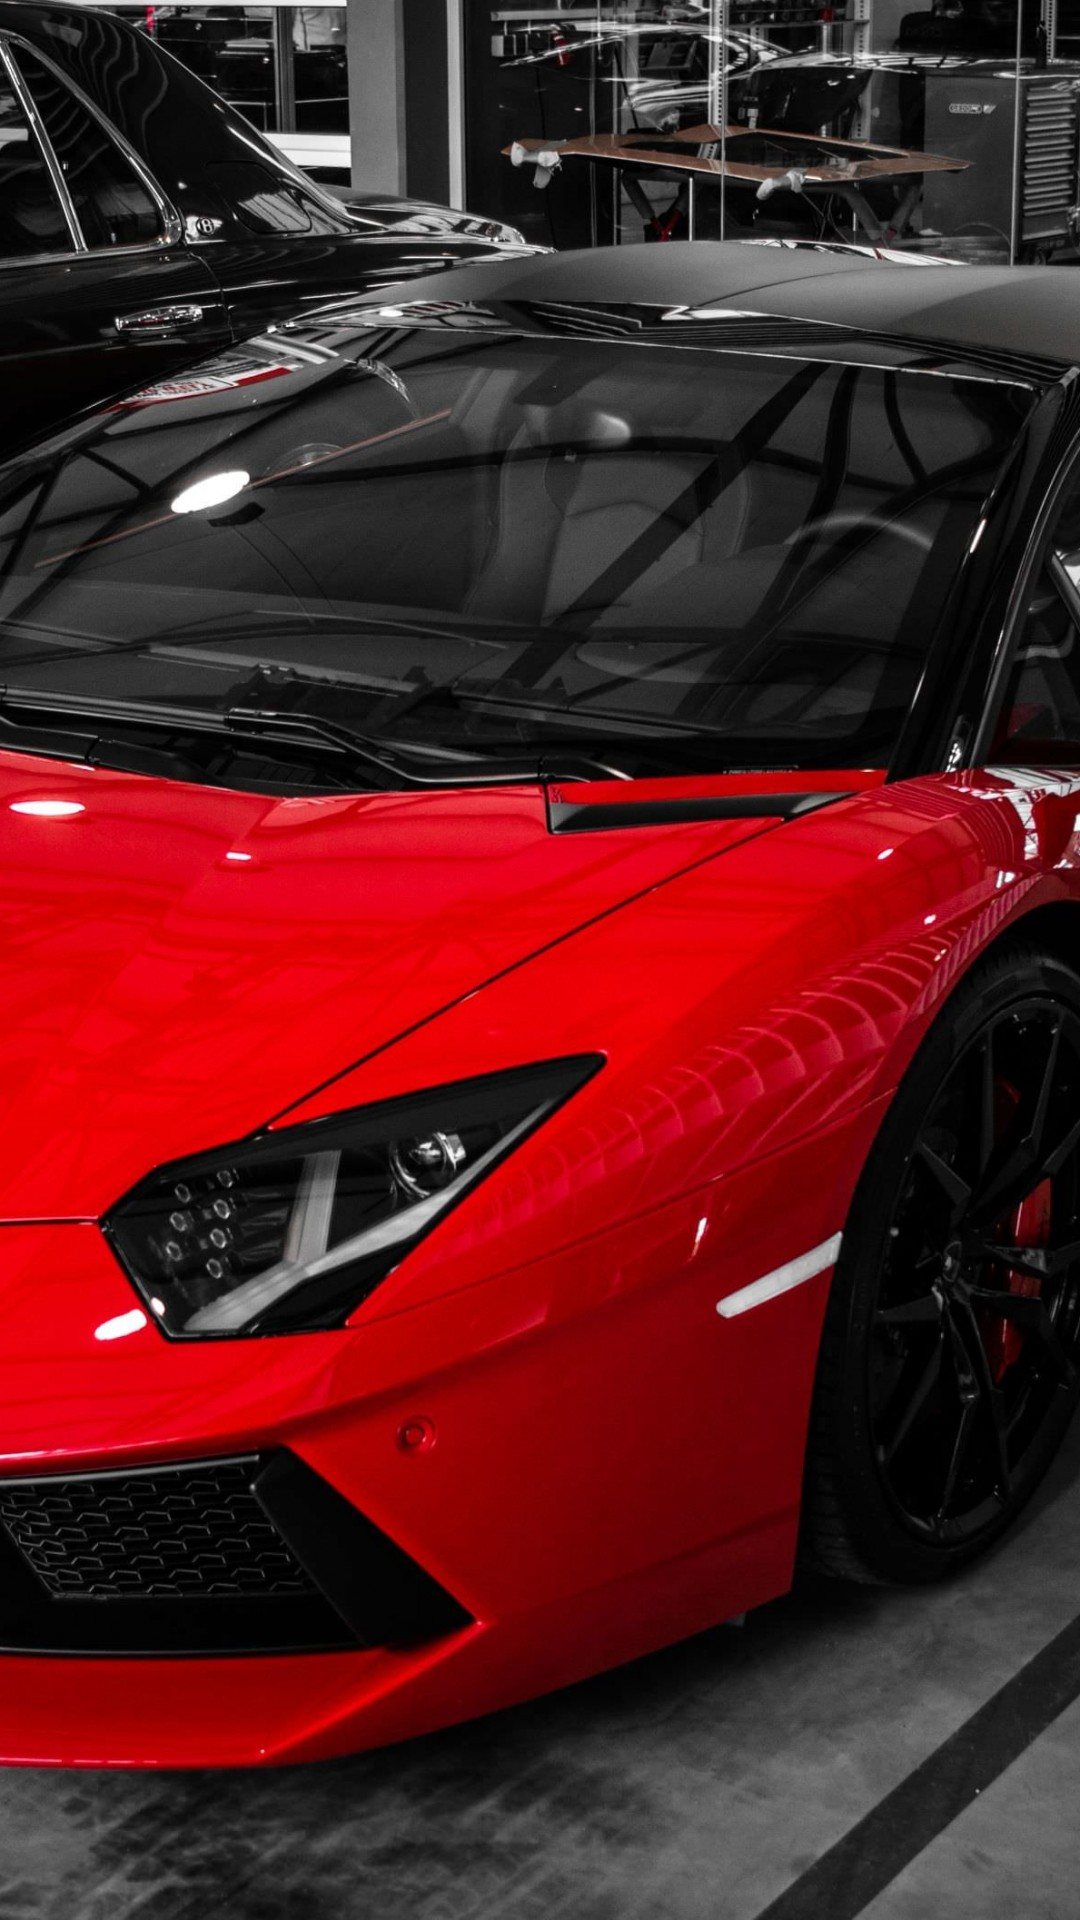 Red Lamborghini Aventador Wallpaper for LG G2